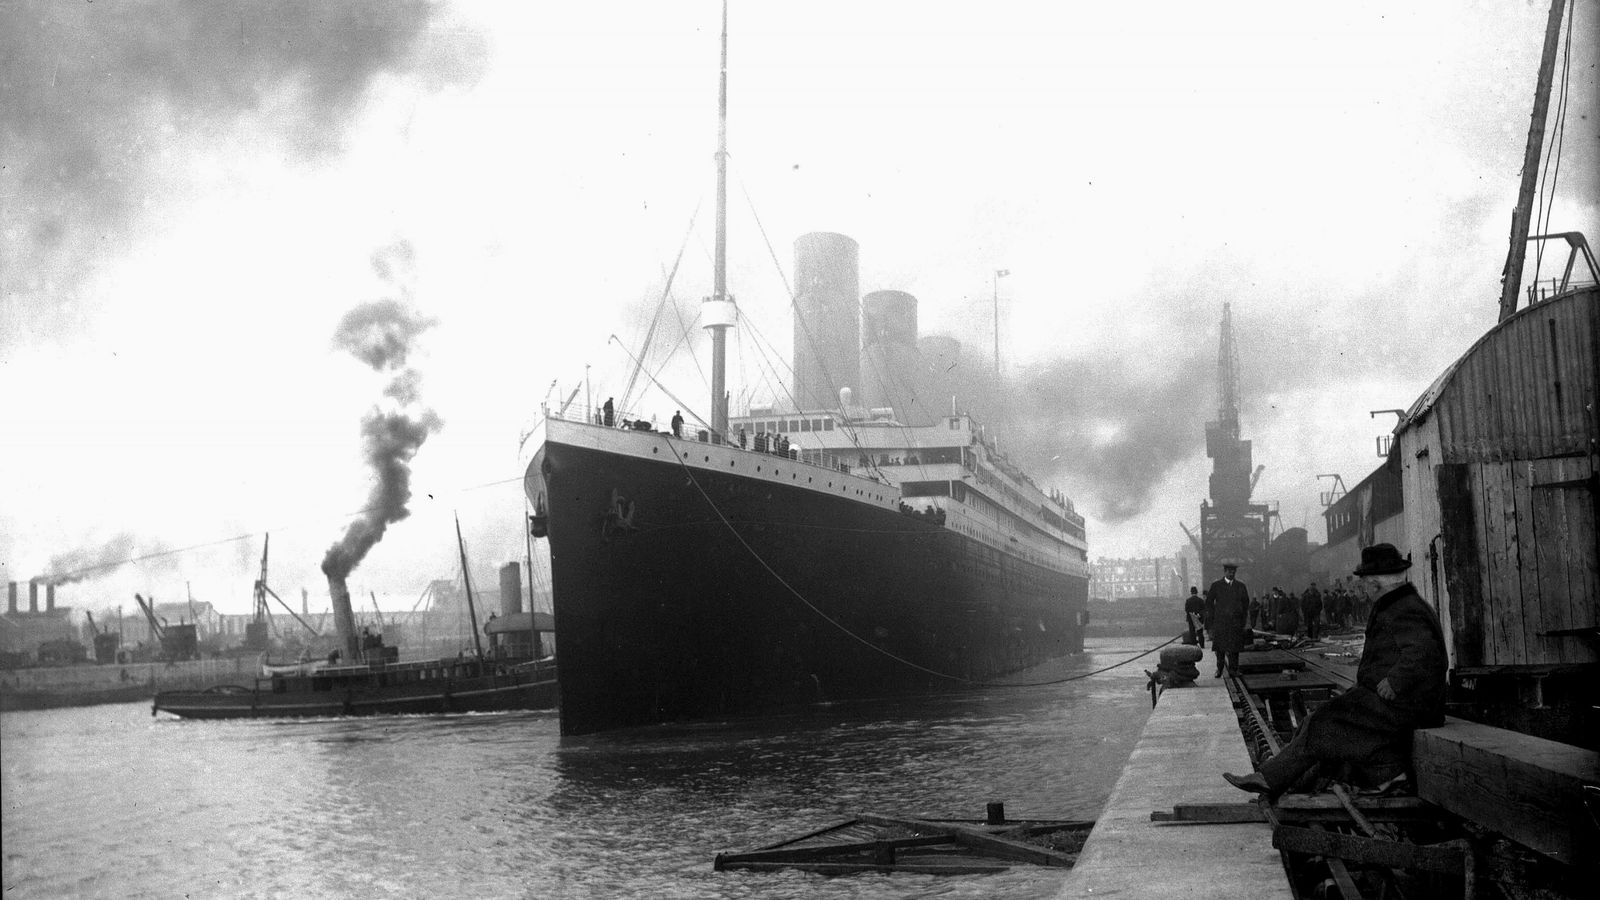 The Titanic at anchorage in Southampton.